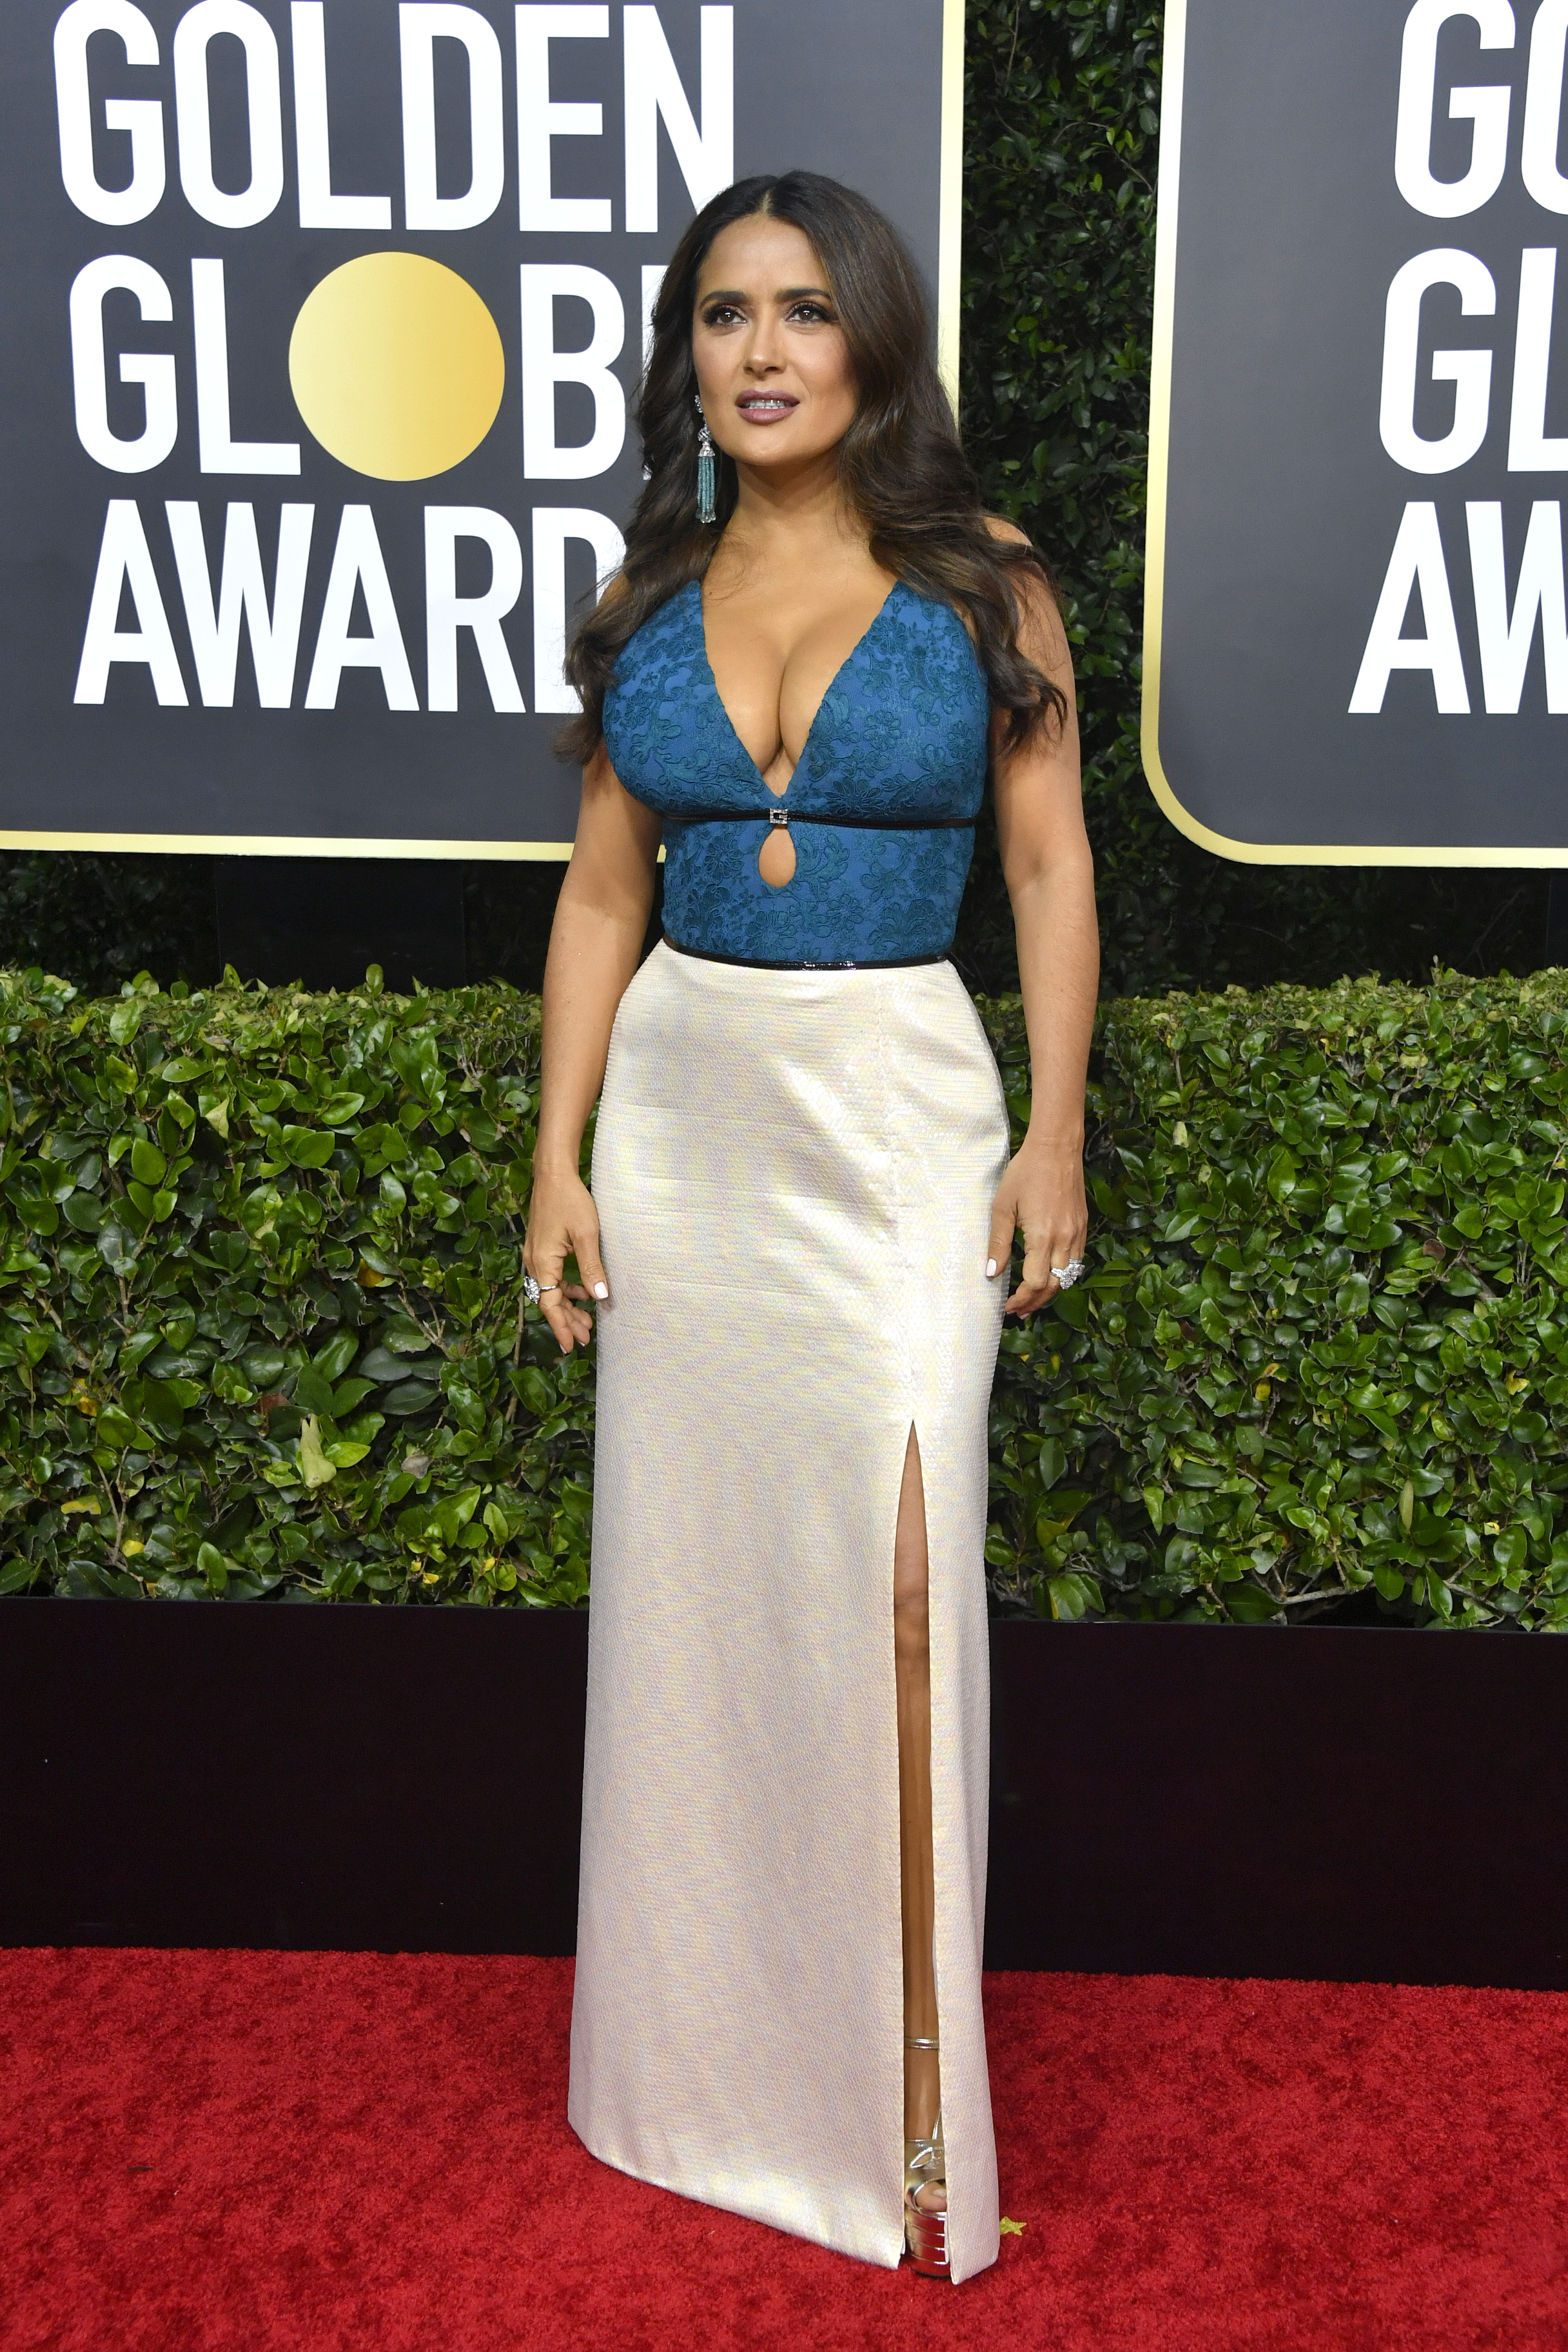 BEVERLY HILLS, CALIFORNIA - JANUARY 05: Salma Hayek attends the 77th Annual Golden Globe Awards at The Beverly Hilton Hotel on January 05, 2020 in Beverly Hills, California. (Photo by Frazer Harrison/Getty Images)